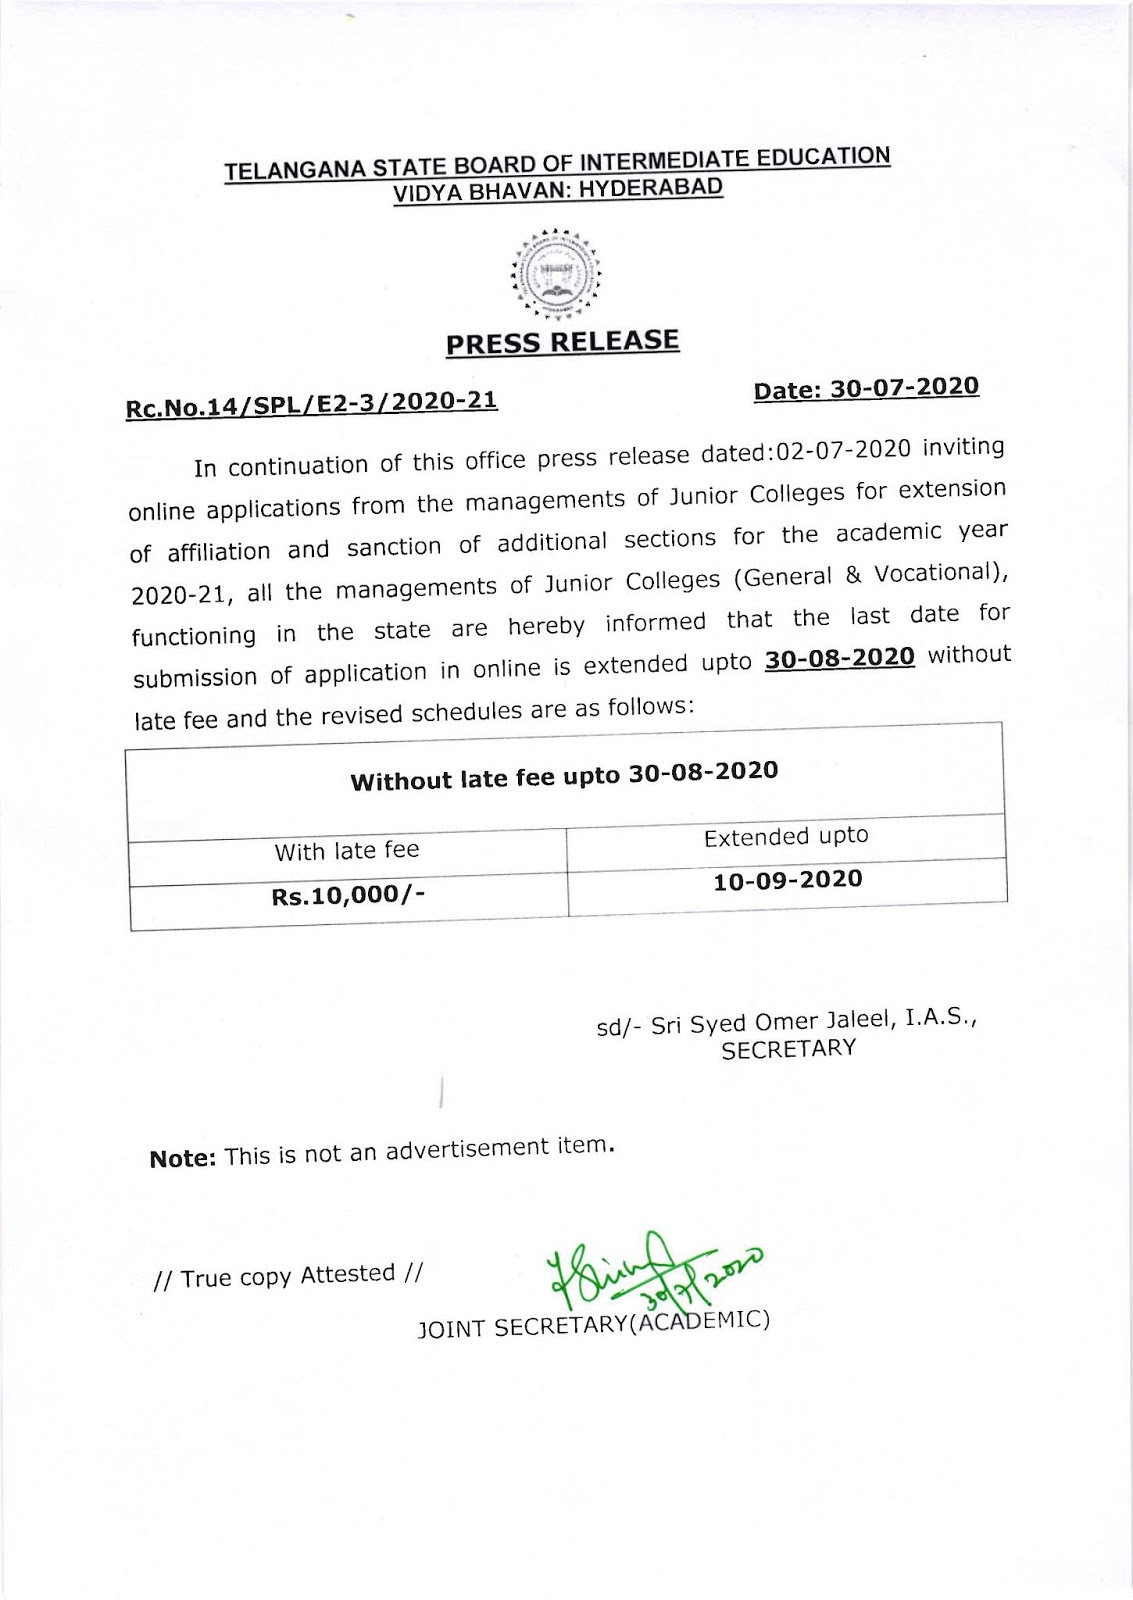 Telangana Intermediate Board Submission of Application Late Fee Notification